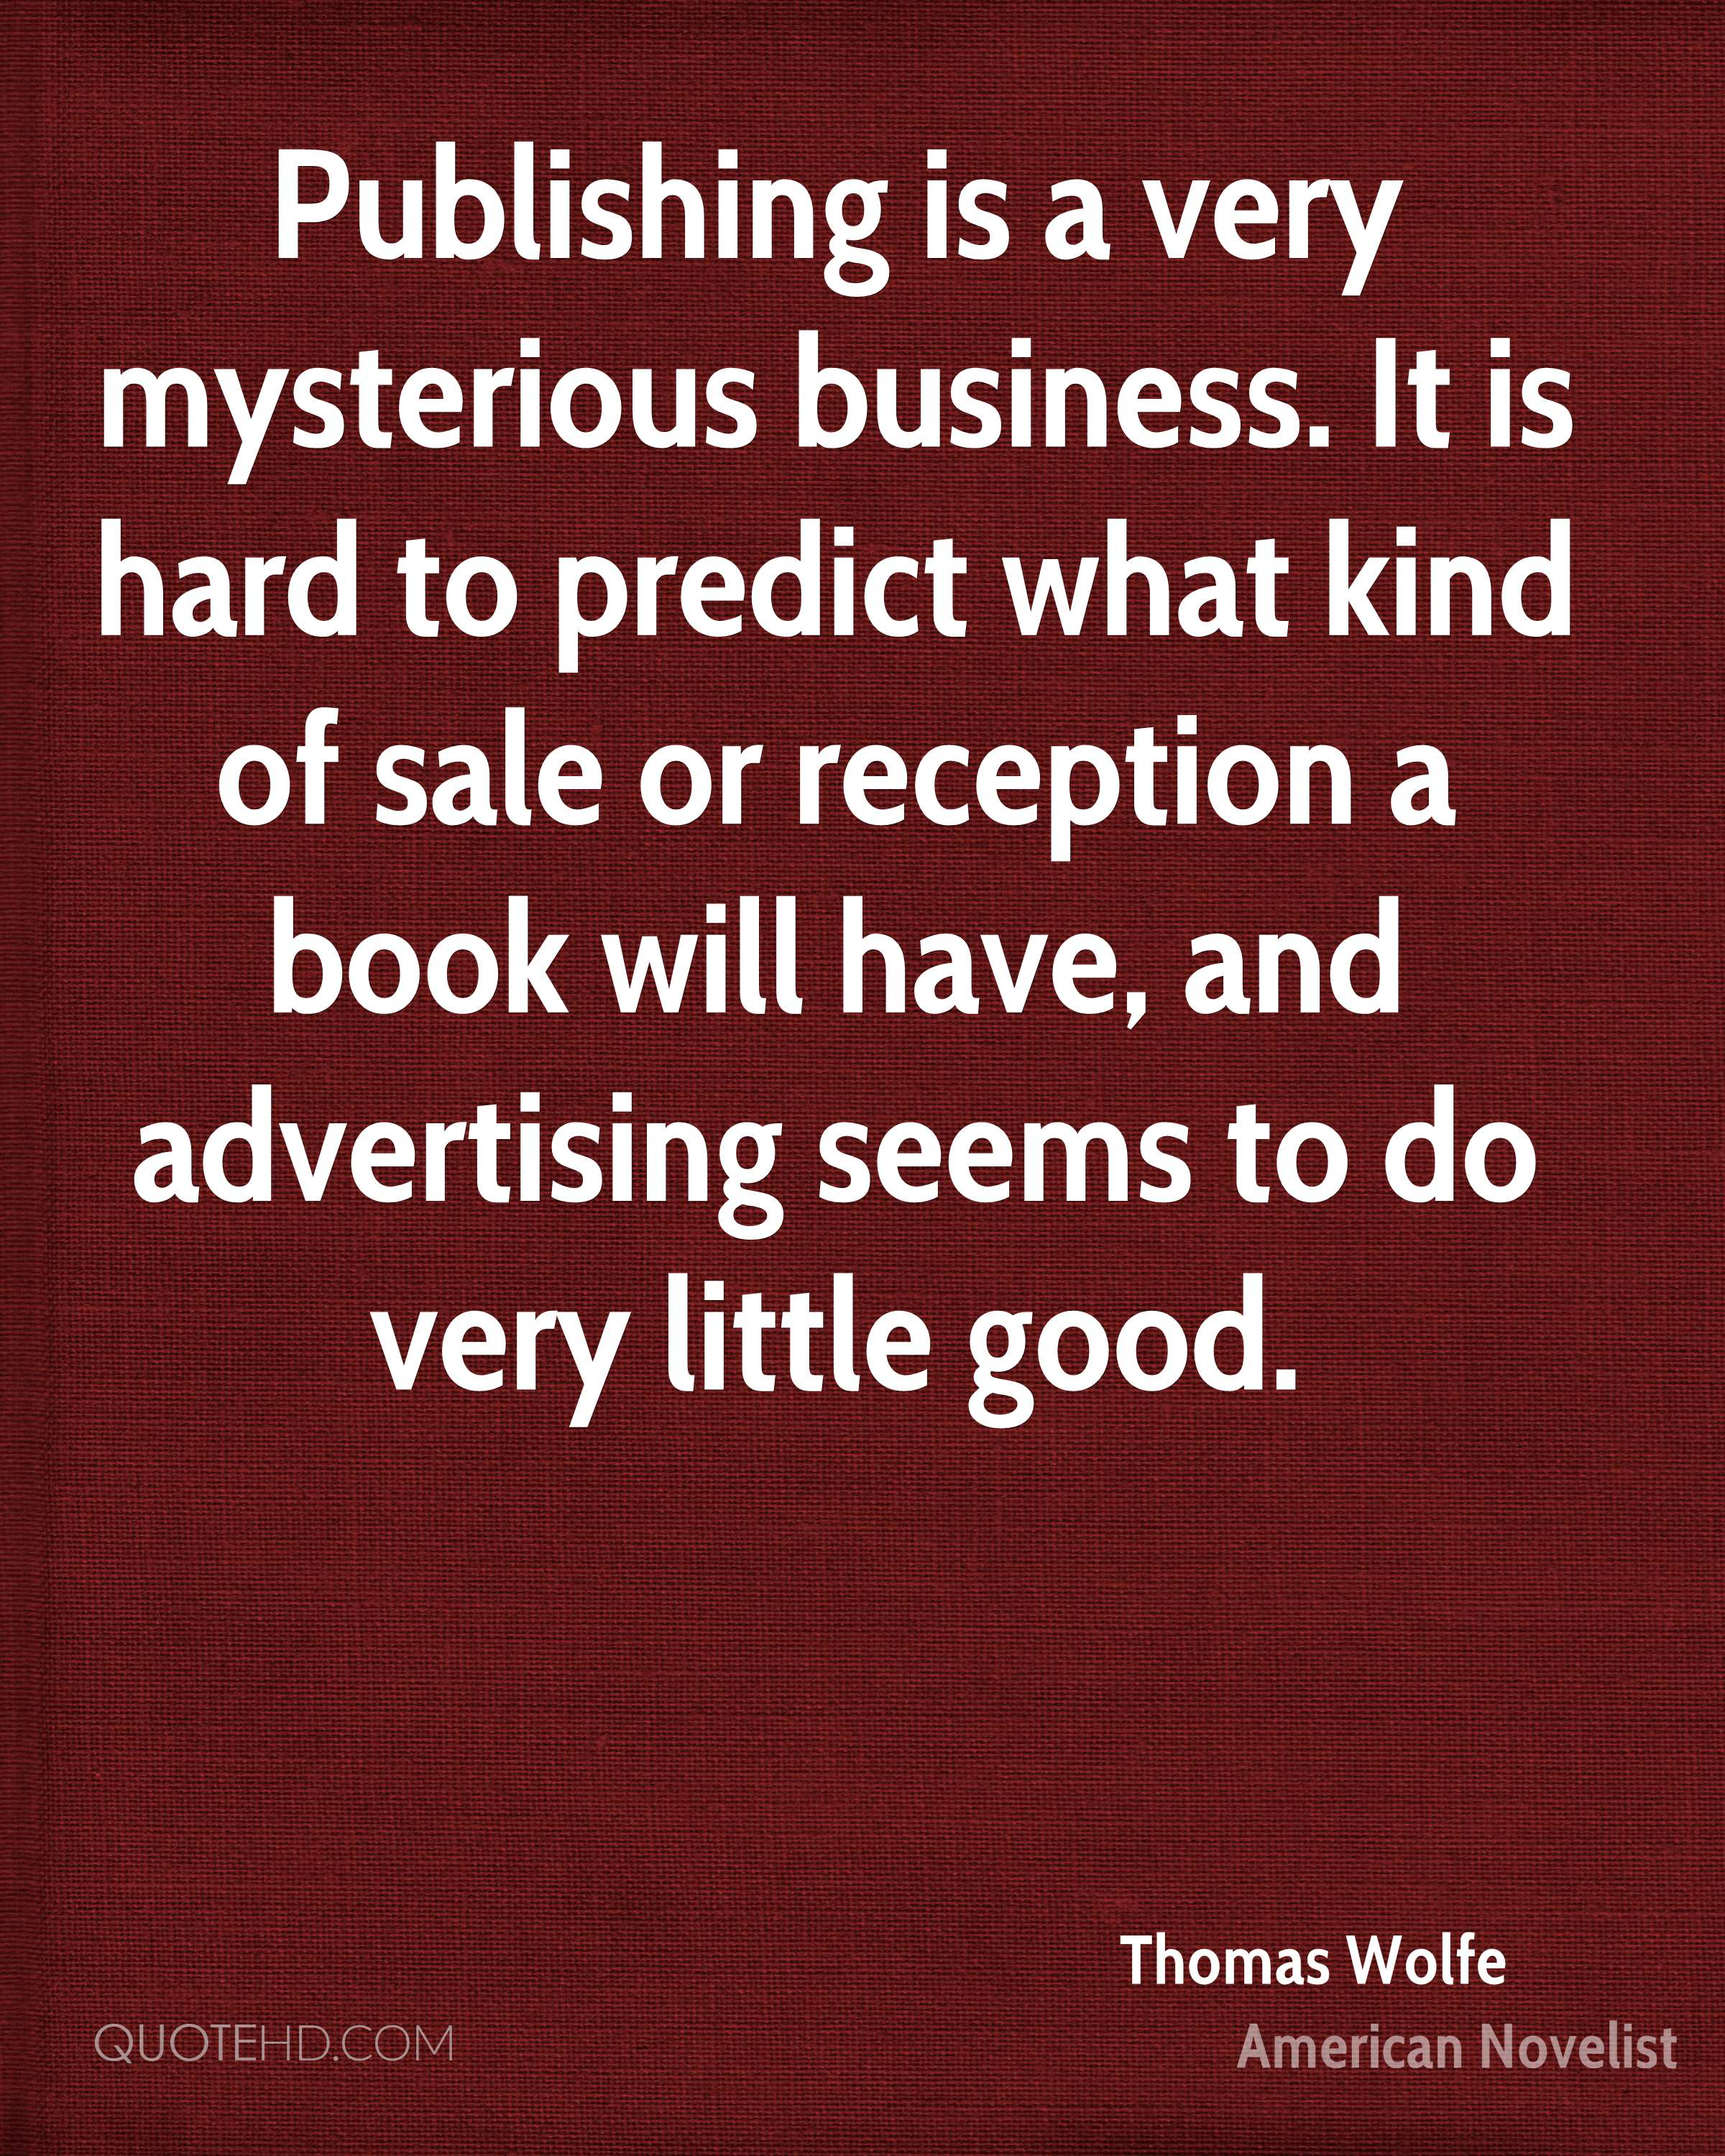 Publishing is a very mysterious business. It is hard to predict what kind of sale or reception a book will have, and advertising seems to do very little good.